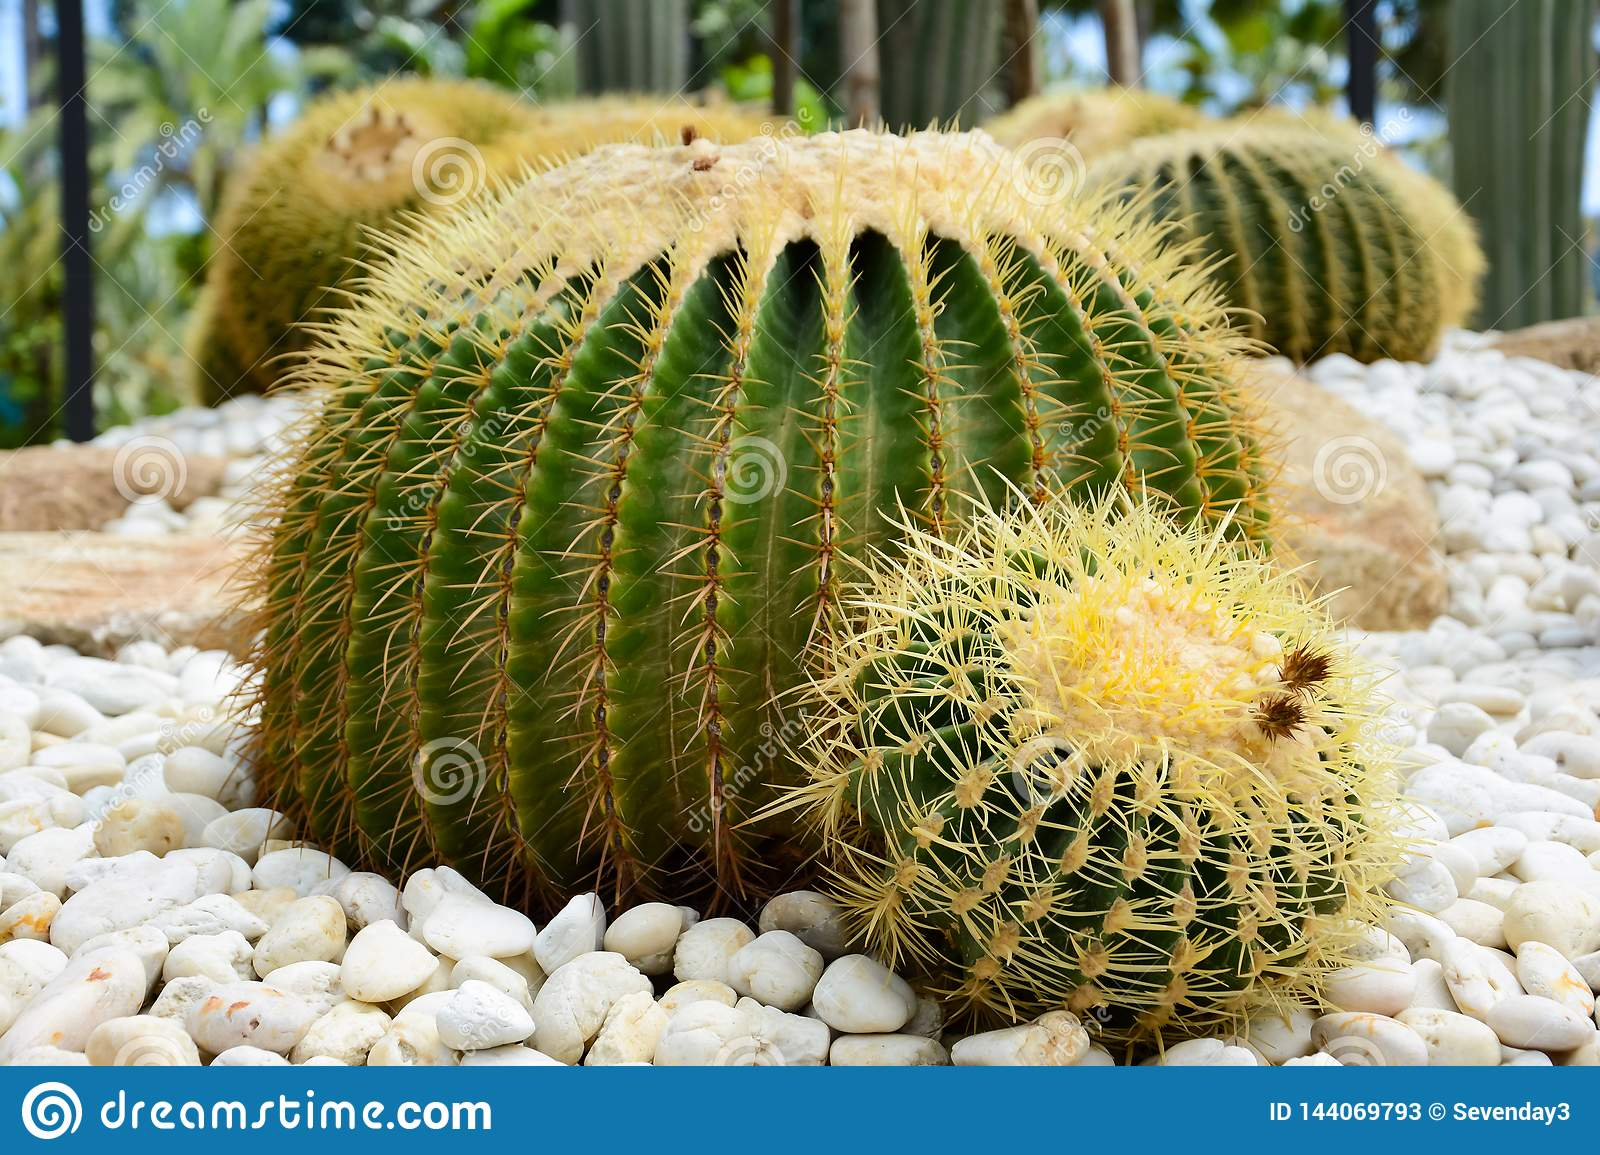 Golden barrel cactus or Echinocactus grusonii Hildm, this is the desert tree which were many thorns , its body look like the green